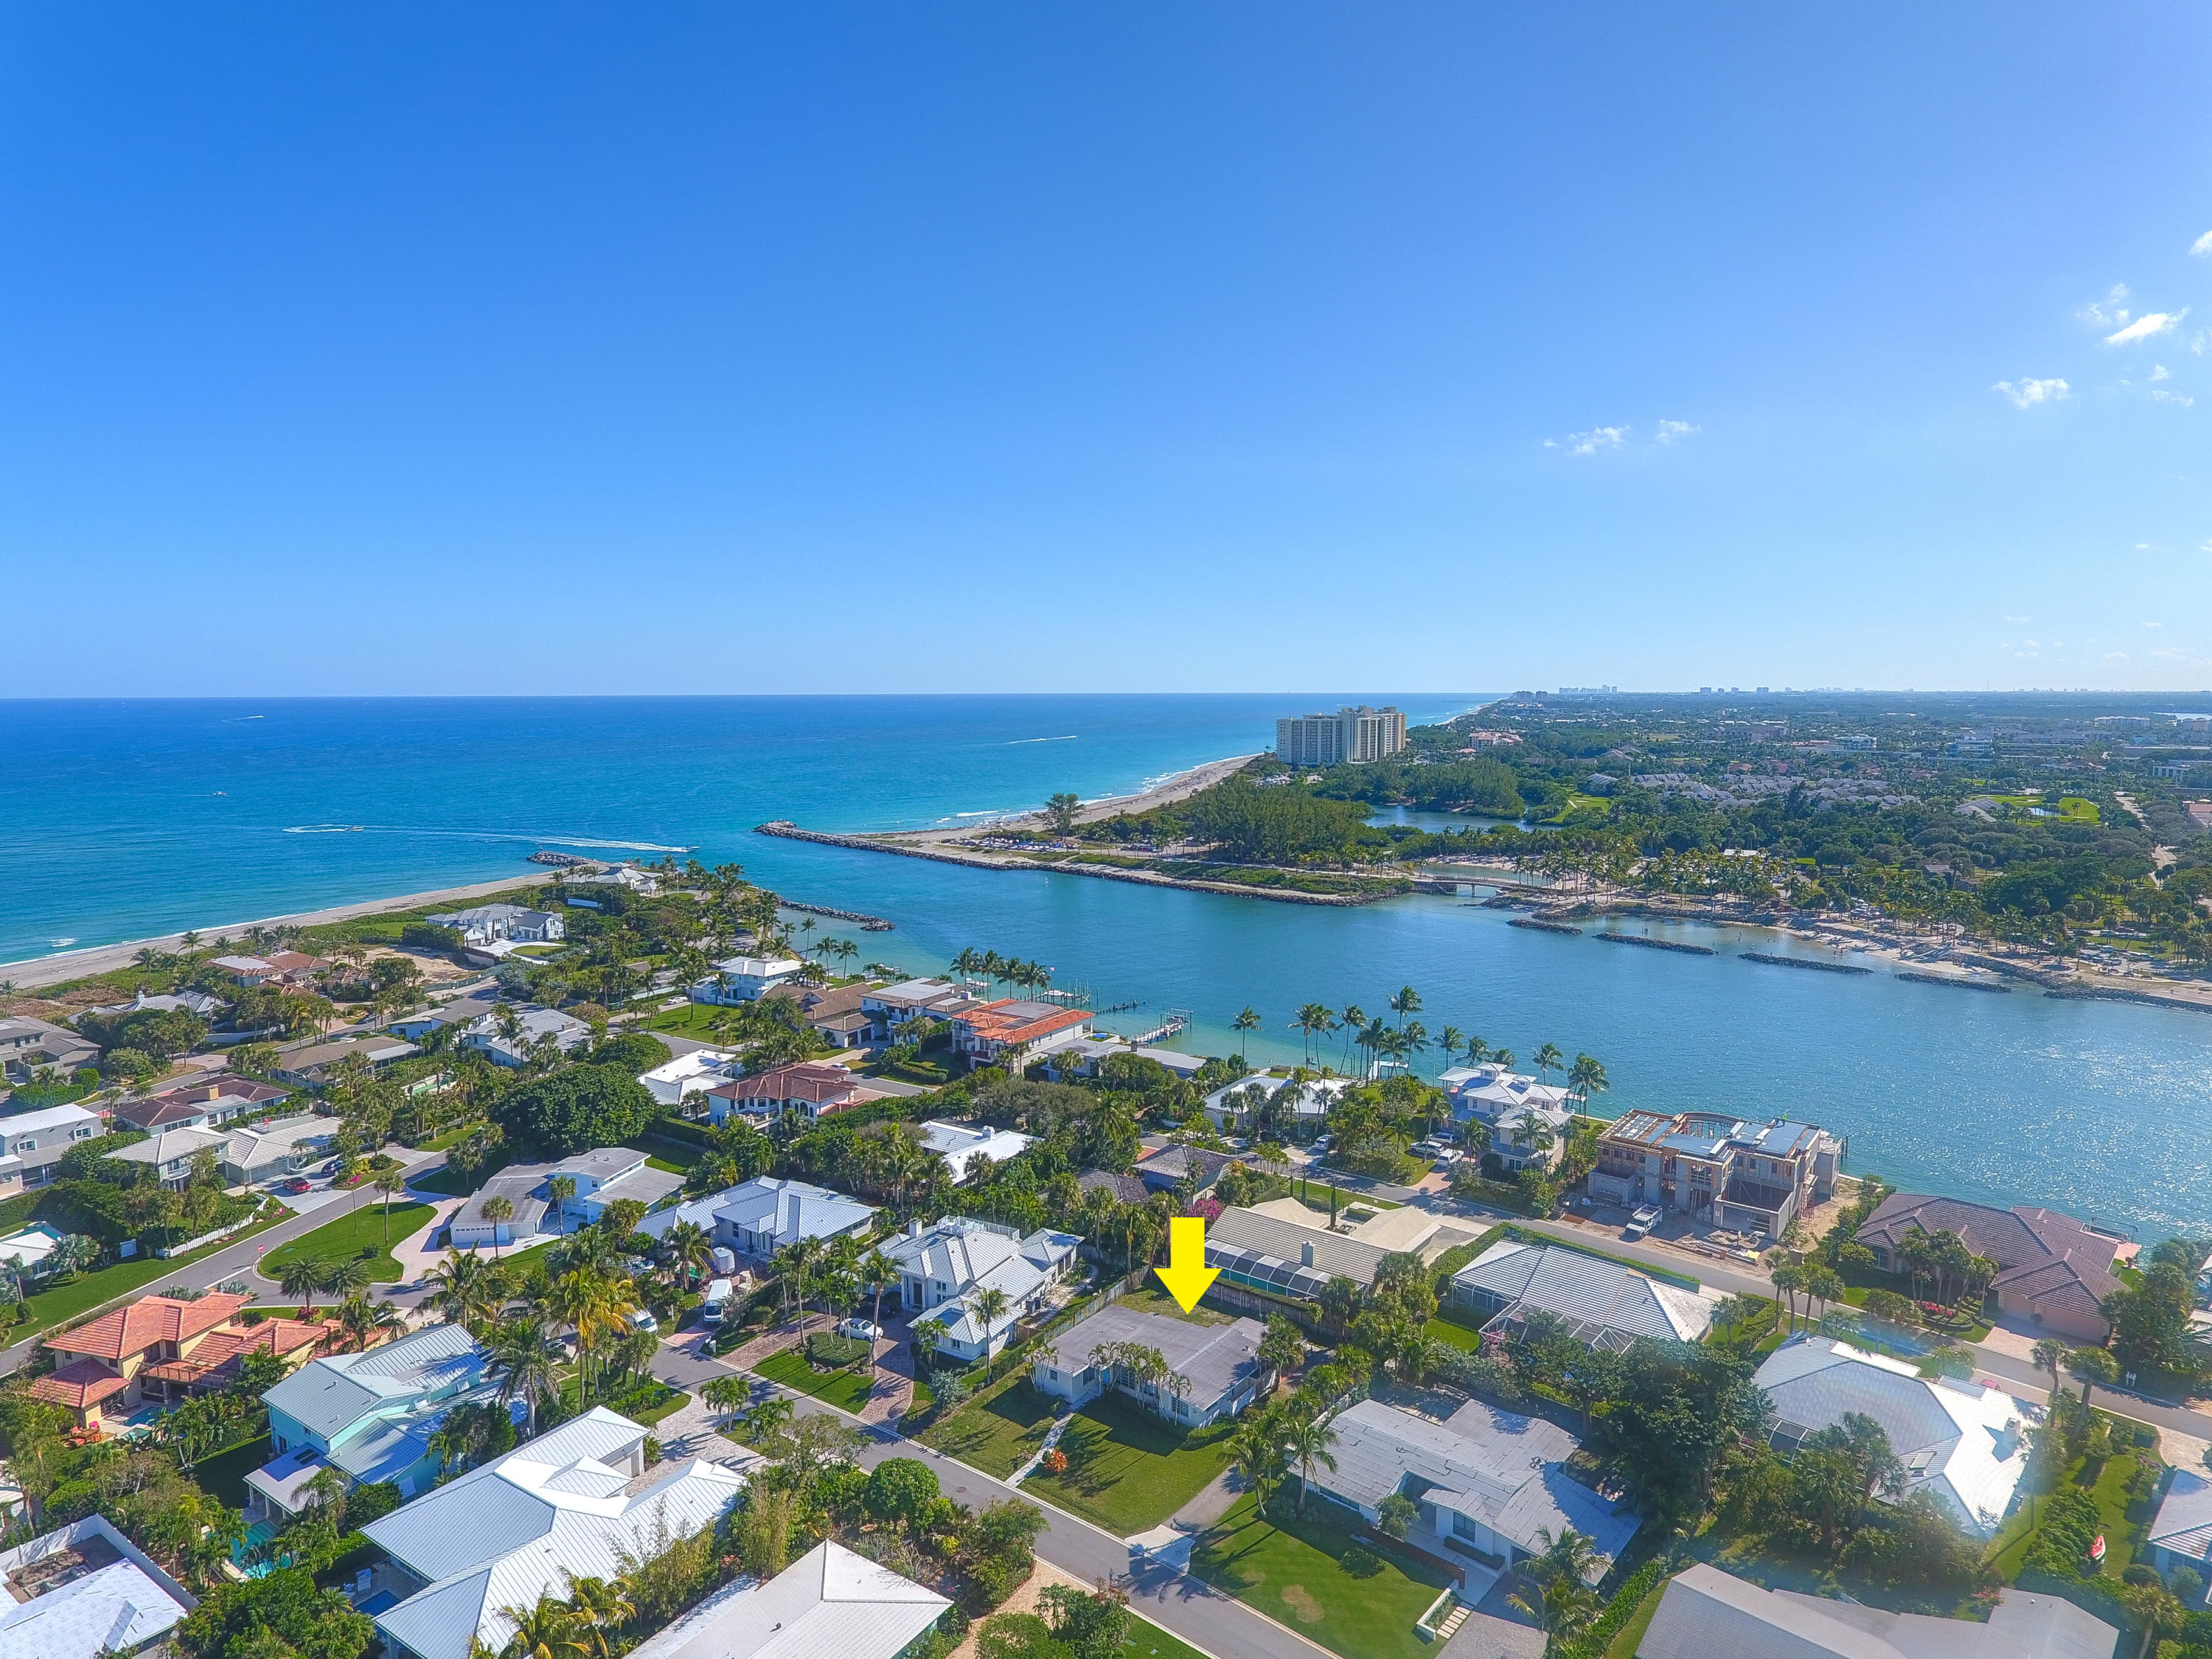 Live in paradise. Charming 3 bedroom, 2 bath beach home or build your dream home on this spacious lot in this desirable beach side community of Jupiter Inlet Colony. Community offers beach access with stunning turquoise, clear ocean waters. This neighborhood is a playground for snorkeling, paddle boarding, fishing and more.  Jupiter Inlet Colony is surrounded by the Atlantic Ocean, Intracoastal waters and Jupiter Inlet. Dogs are allowed on the beach with leash. Community is considered its own town with private police department within for the 243 home sites. Property is also available for annual, unfurnished rental. Call for details. JIB Club Marina with boat slips and beach club available for additional fees and or membership required.